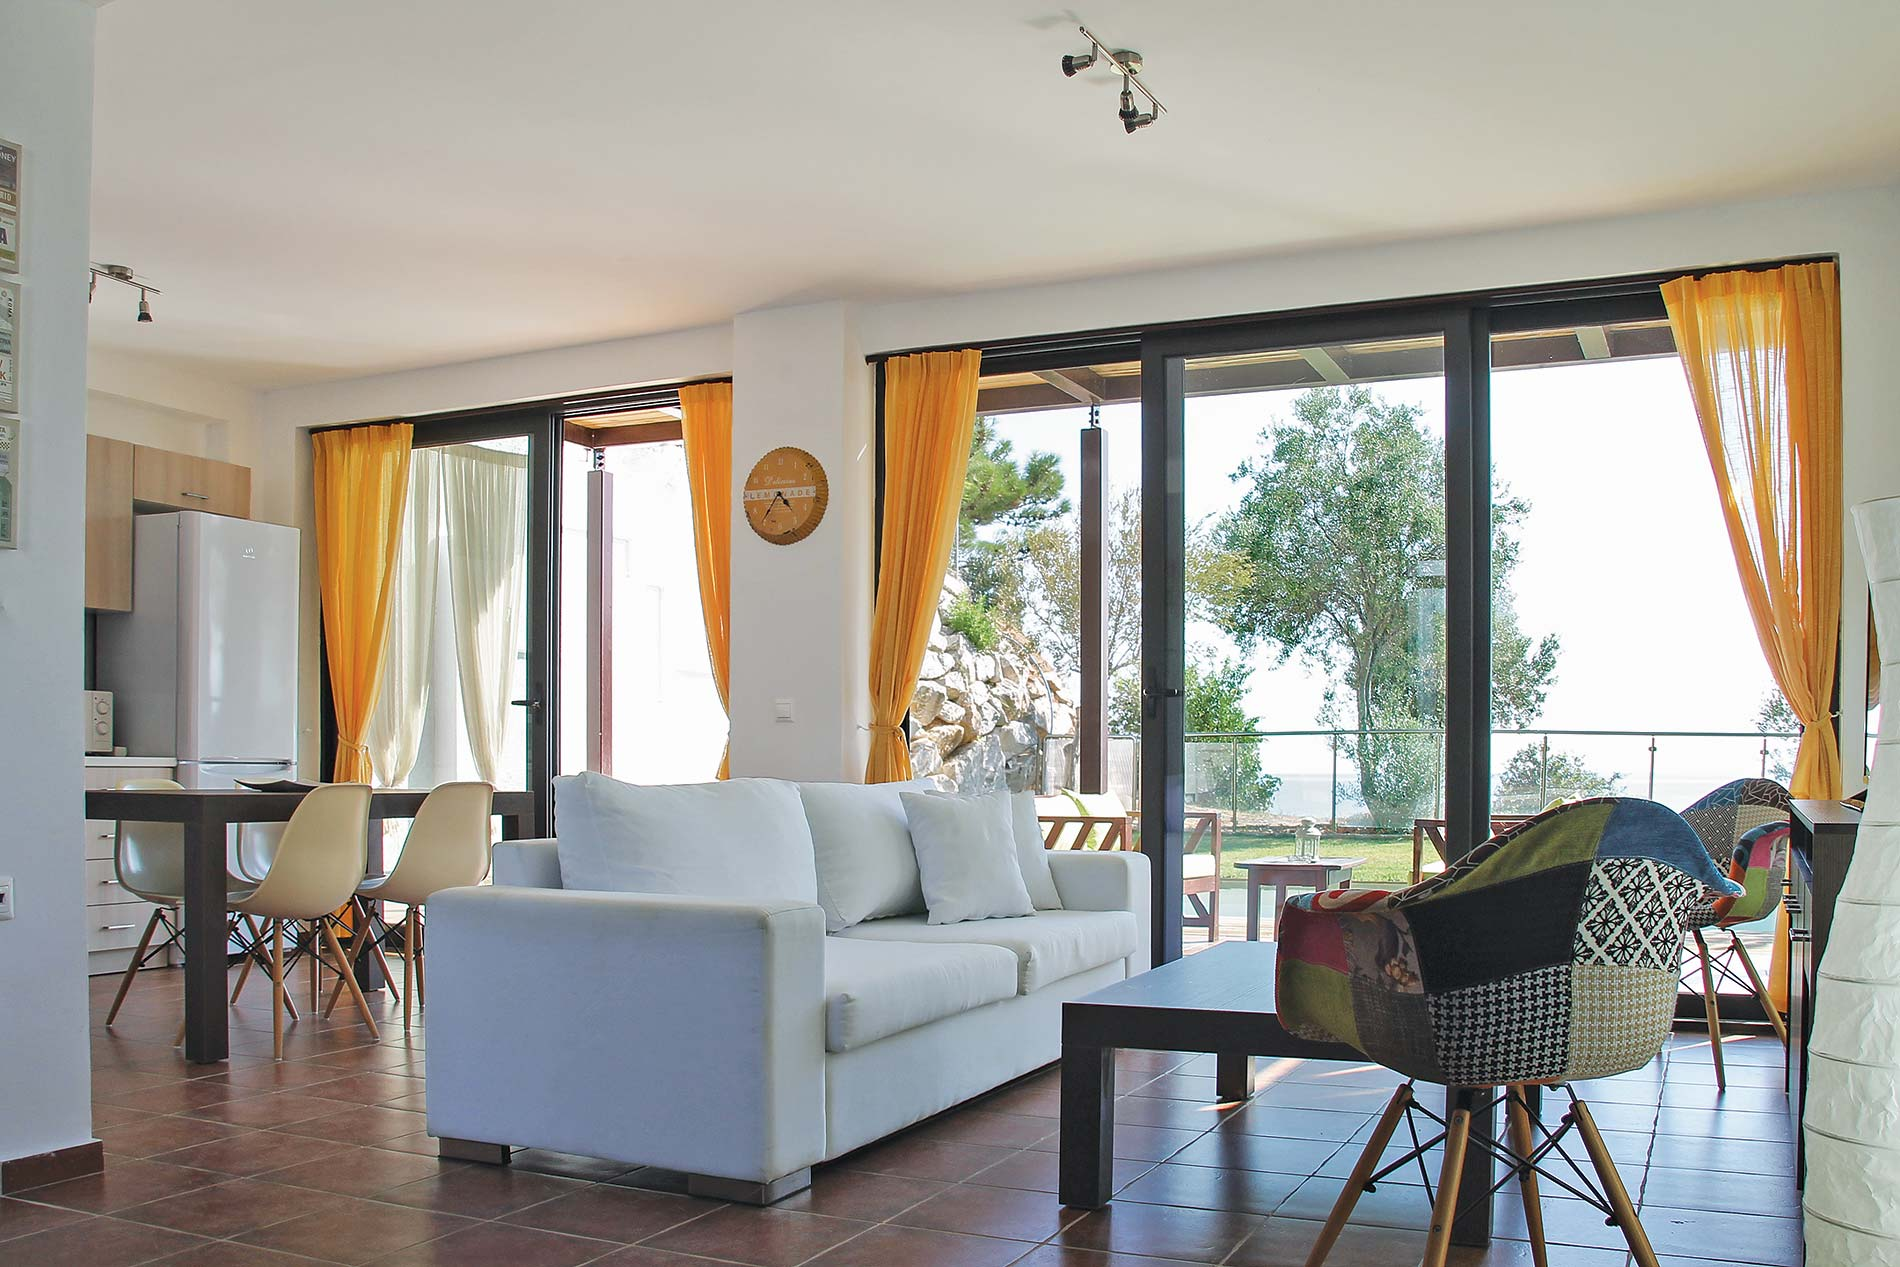 Kalma Villa V in Nea Moudania - sleeps 6 people